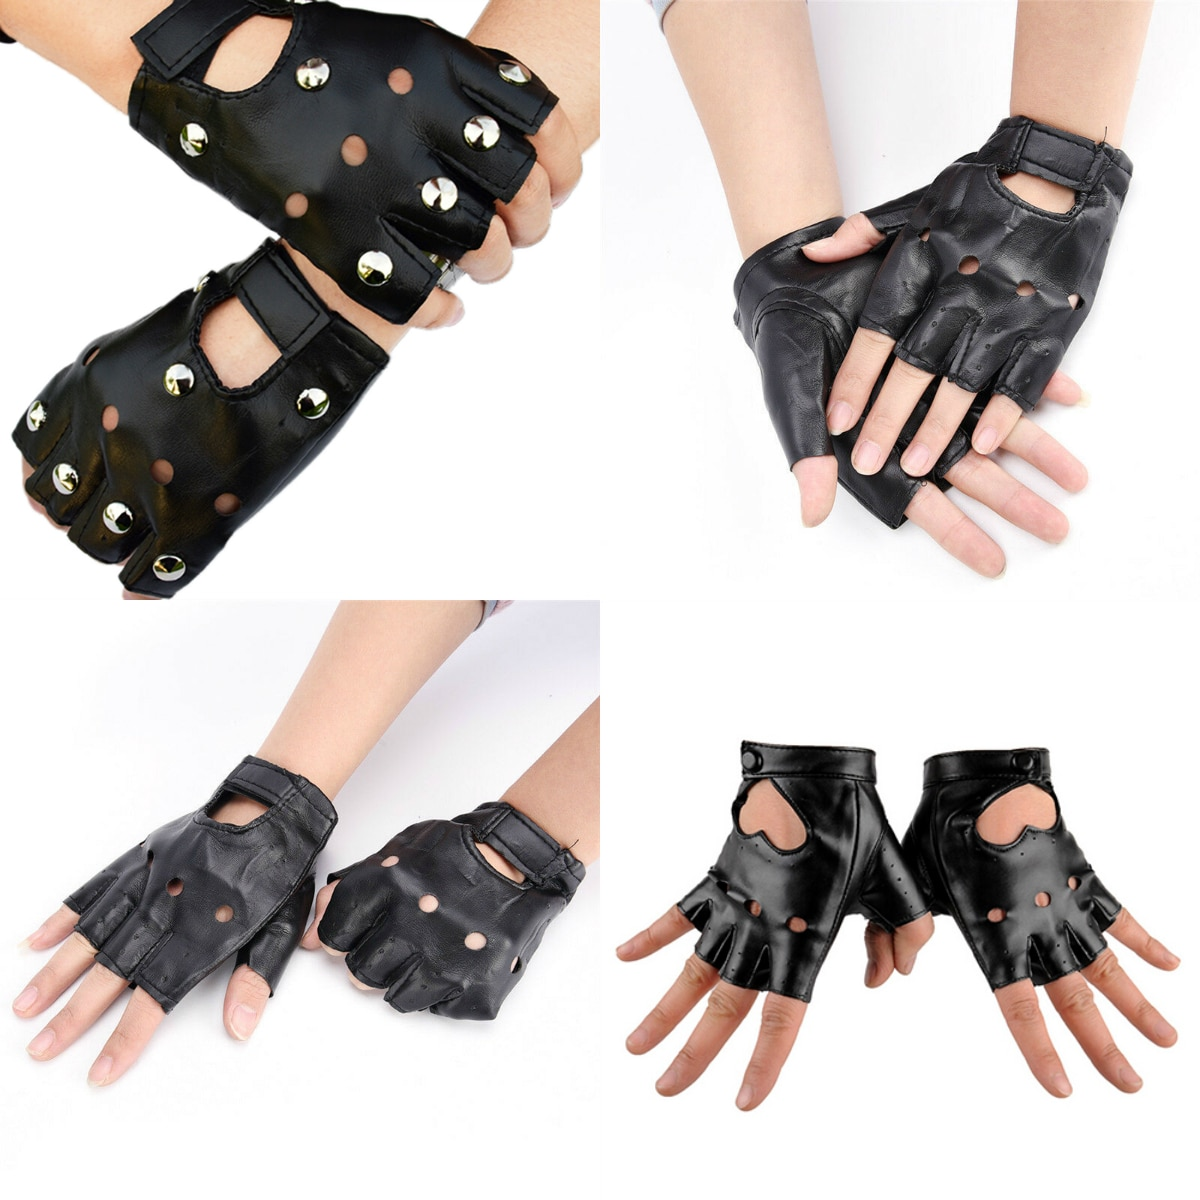 1pair Women Fashion PU Leather Black Half Finger Gloves Cool Heart Hollow Fingerless Gloves Boy Gloves For Fitness